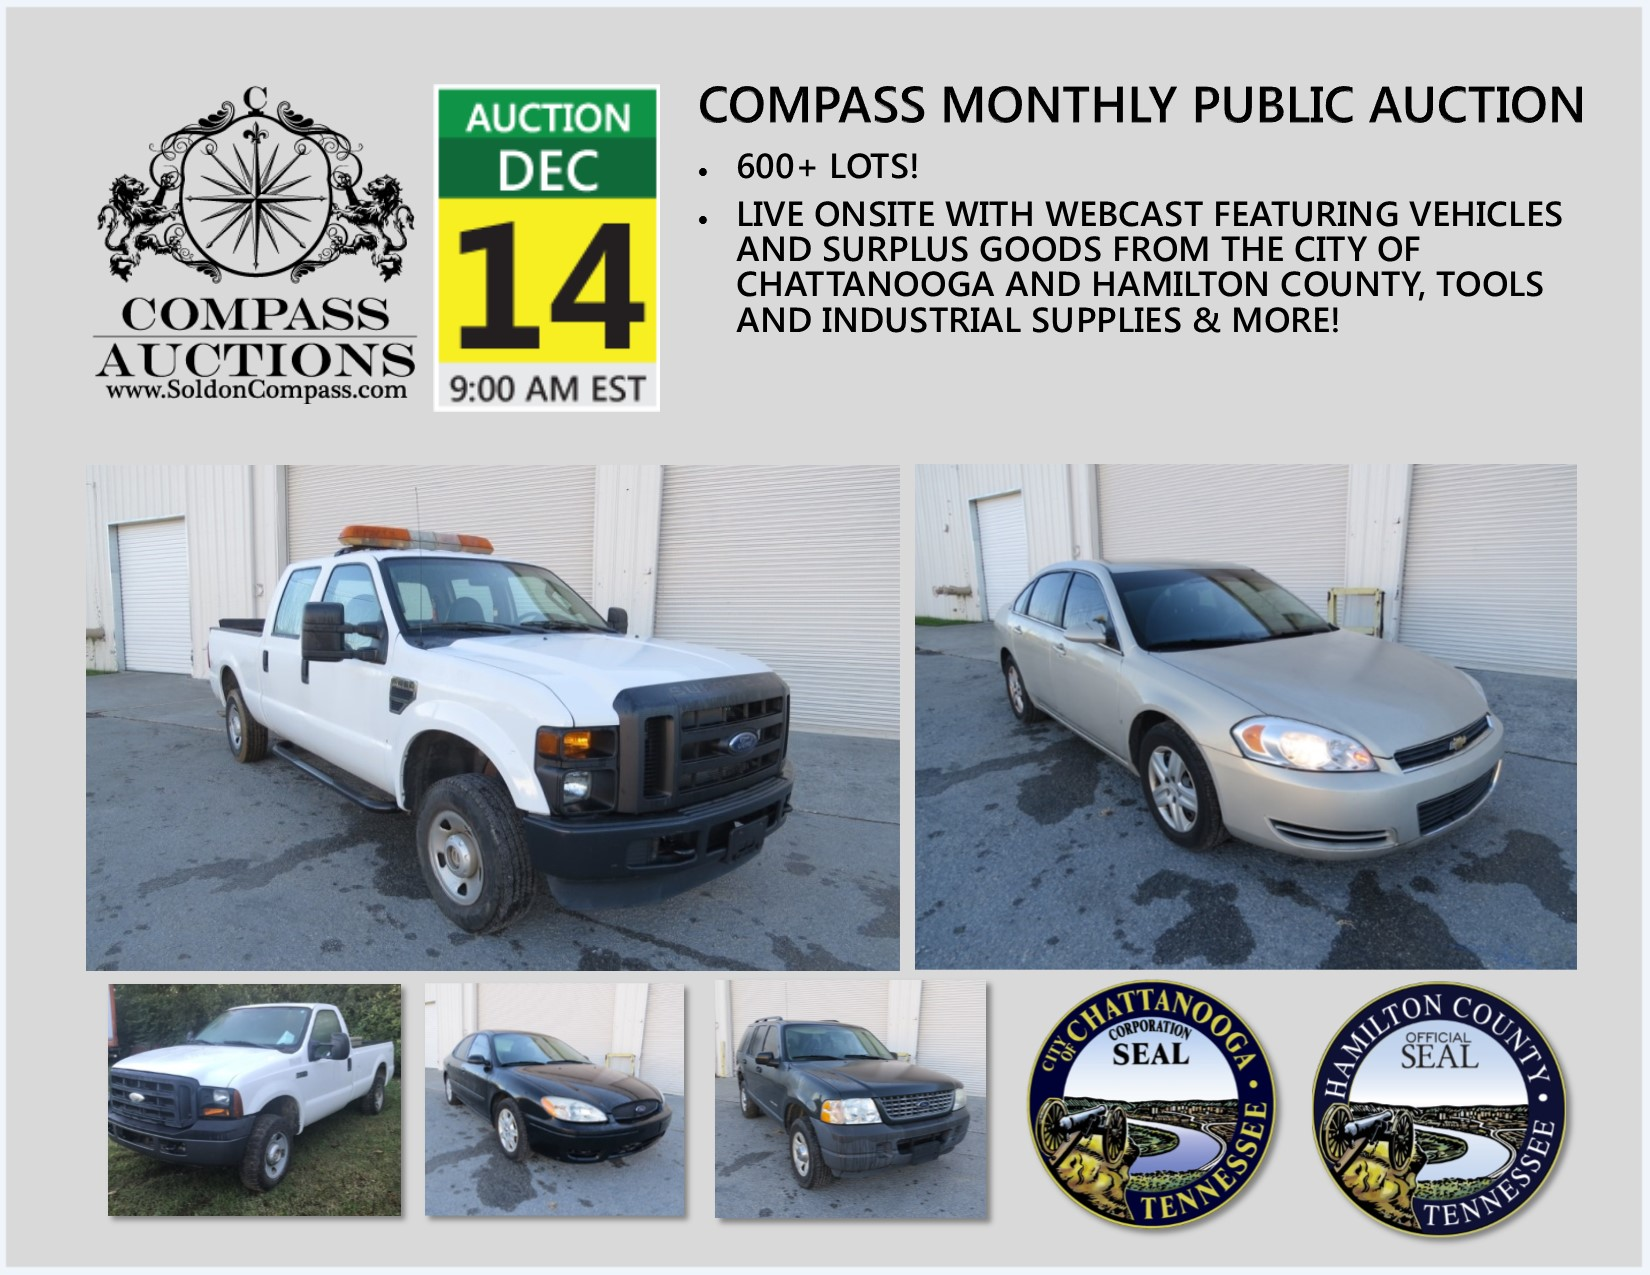 Compass Monthly Public Auction December 14